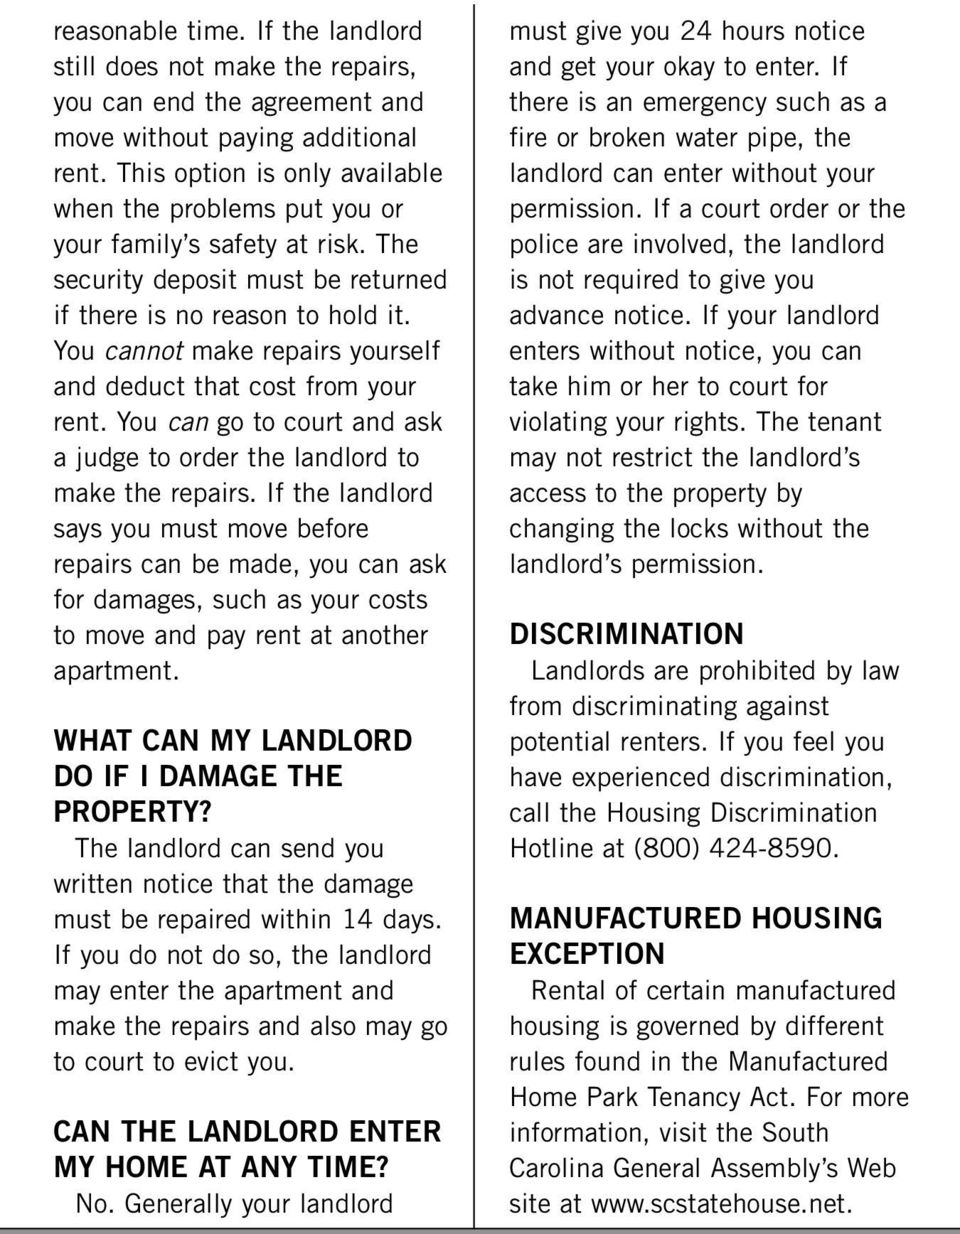 You cannot make repairs yourself and deduct that cost from your rent. You can go to court and ask a judge to order the landlord to make the repairs.